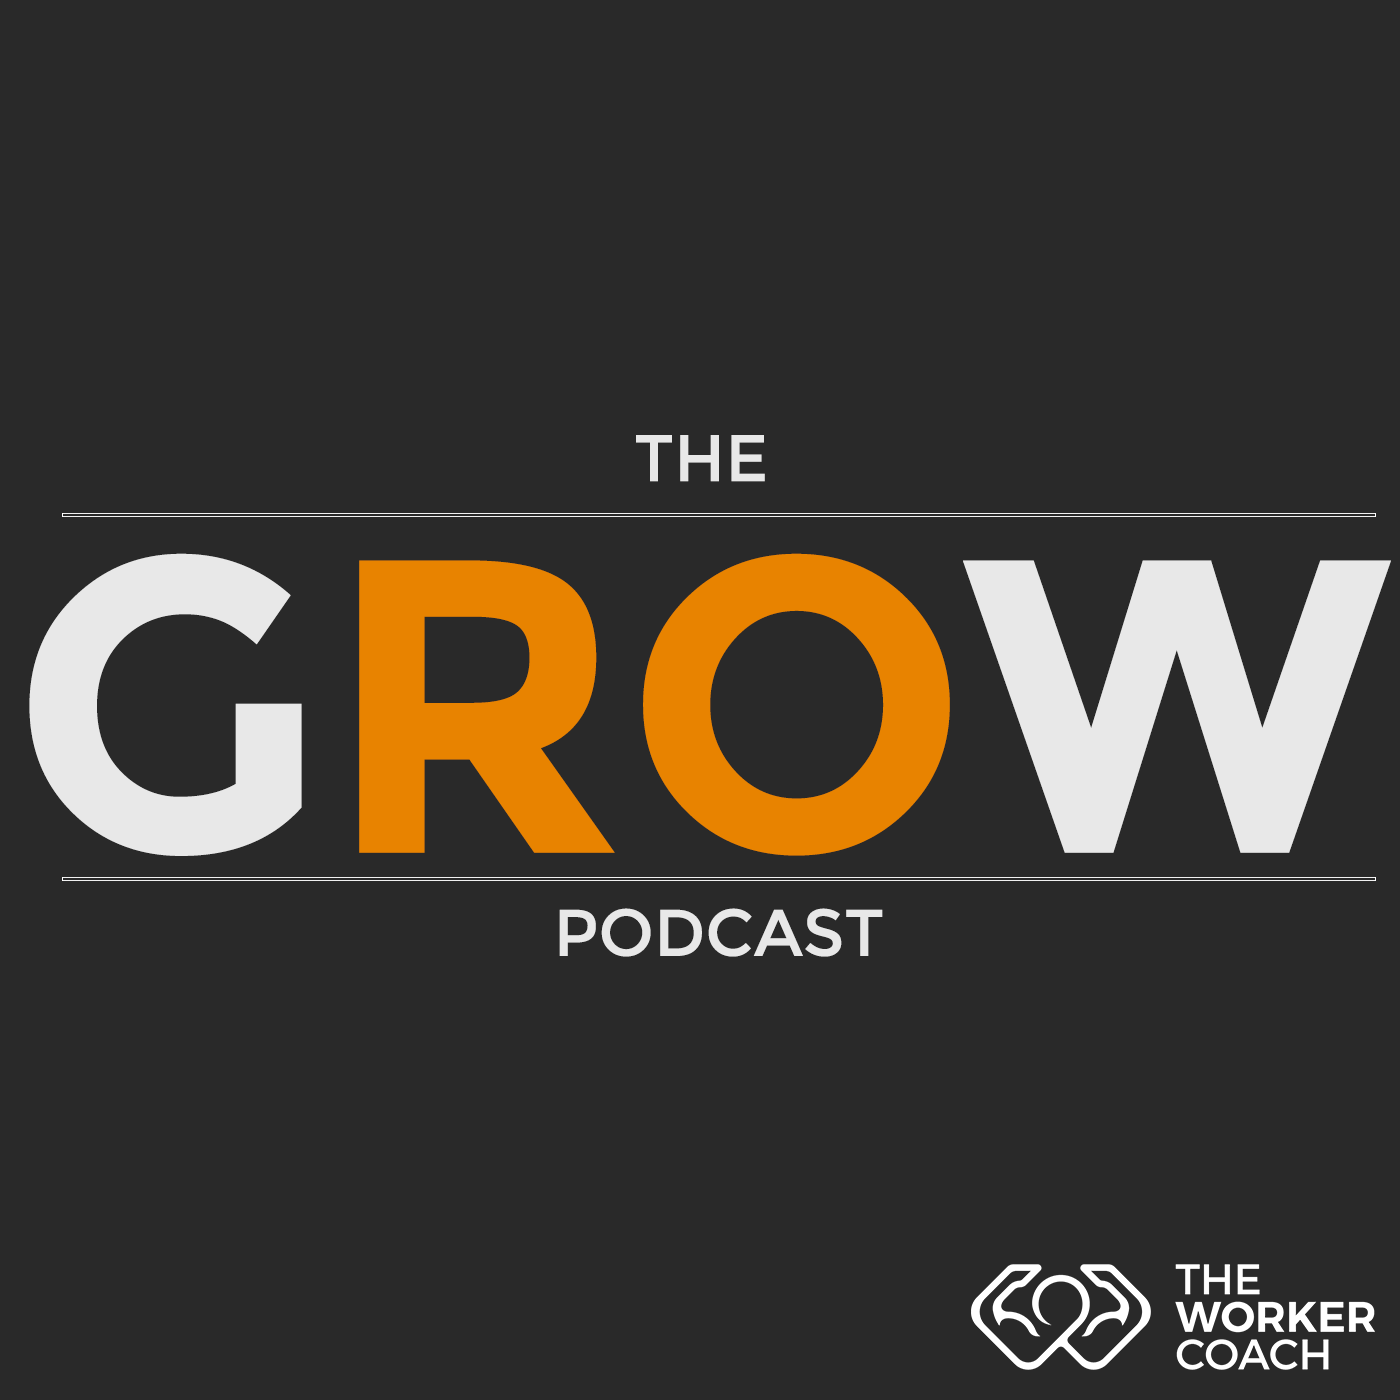 The Grow Podcast show art